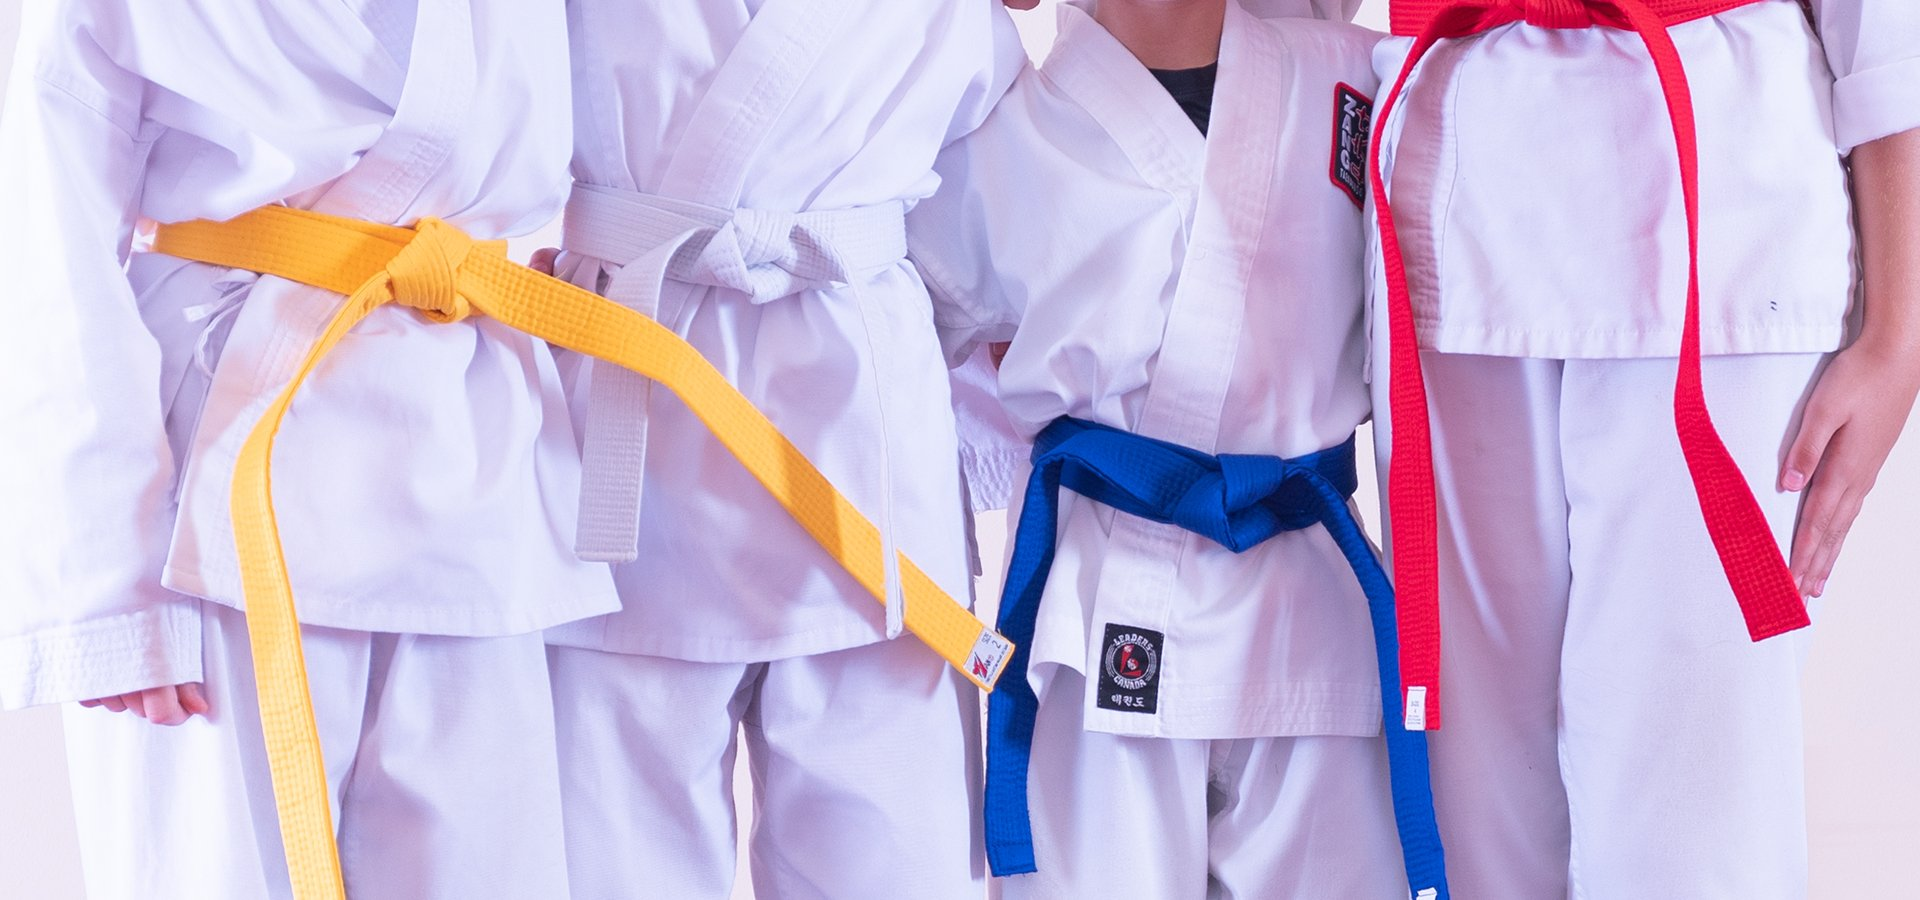 Definition of Taekwon-Do